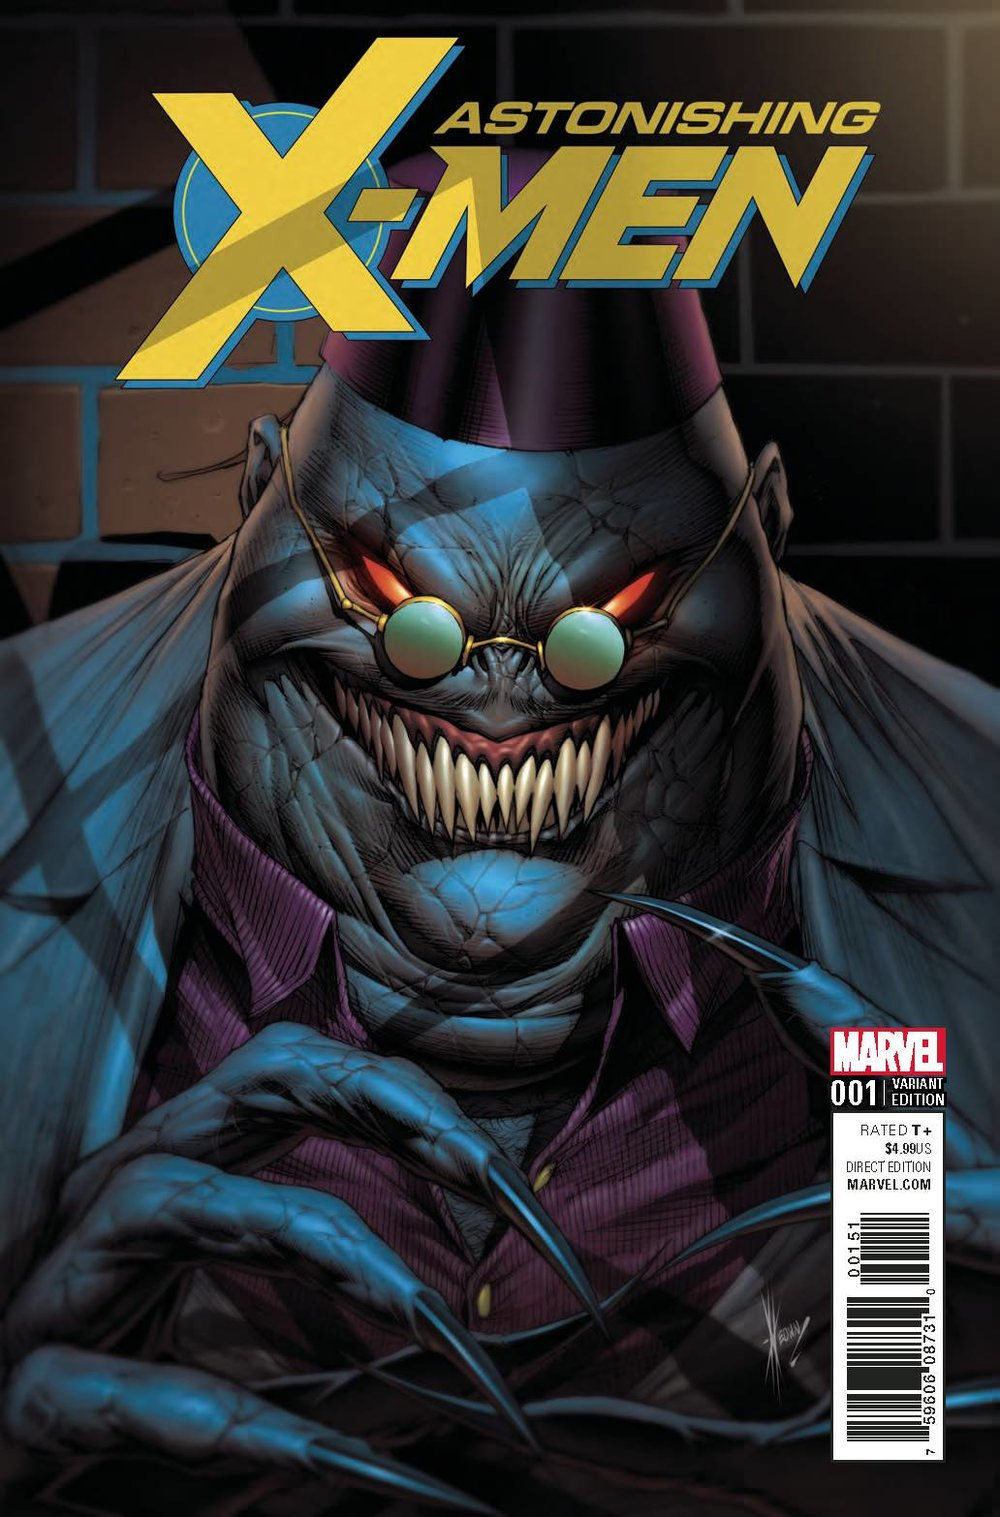 ASTONISHING X-MEN 1 KEOWN VILLAIN VAR.jpg